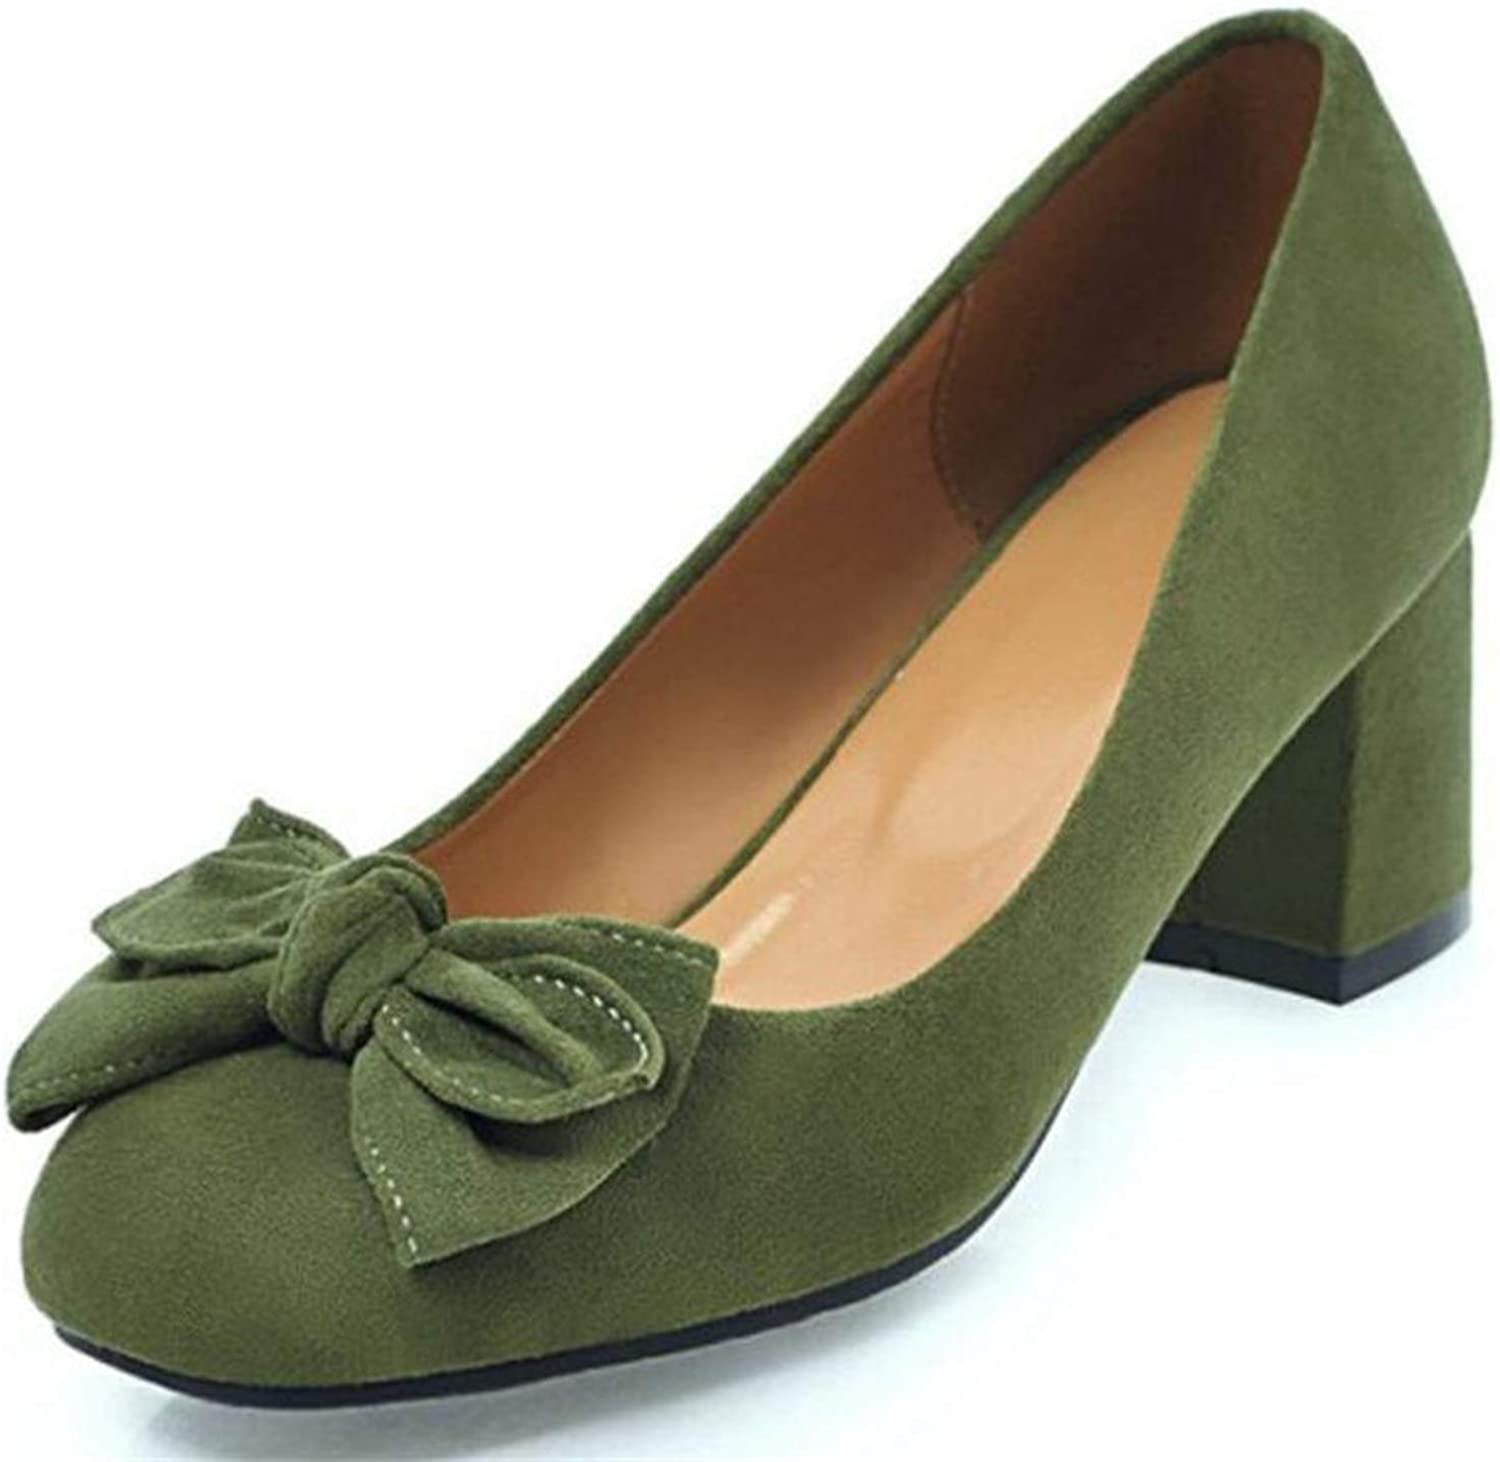 Mao YiE Bow Suede Square Head Single shoes in The Spring with Thick with Low shoes Women